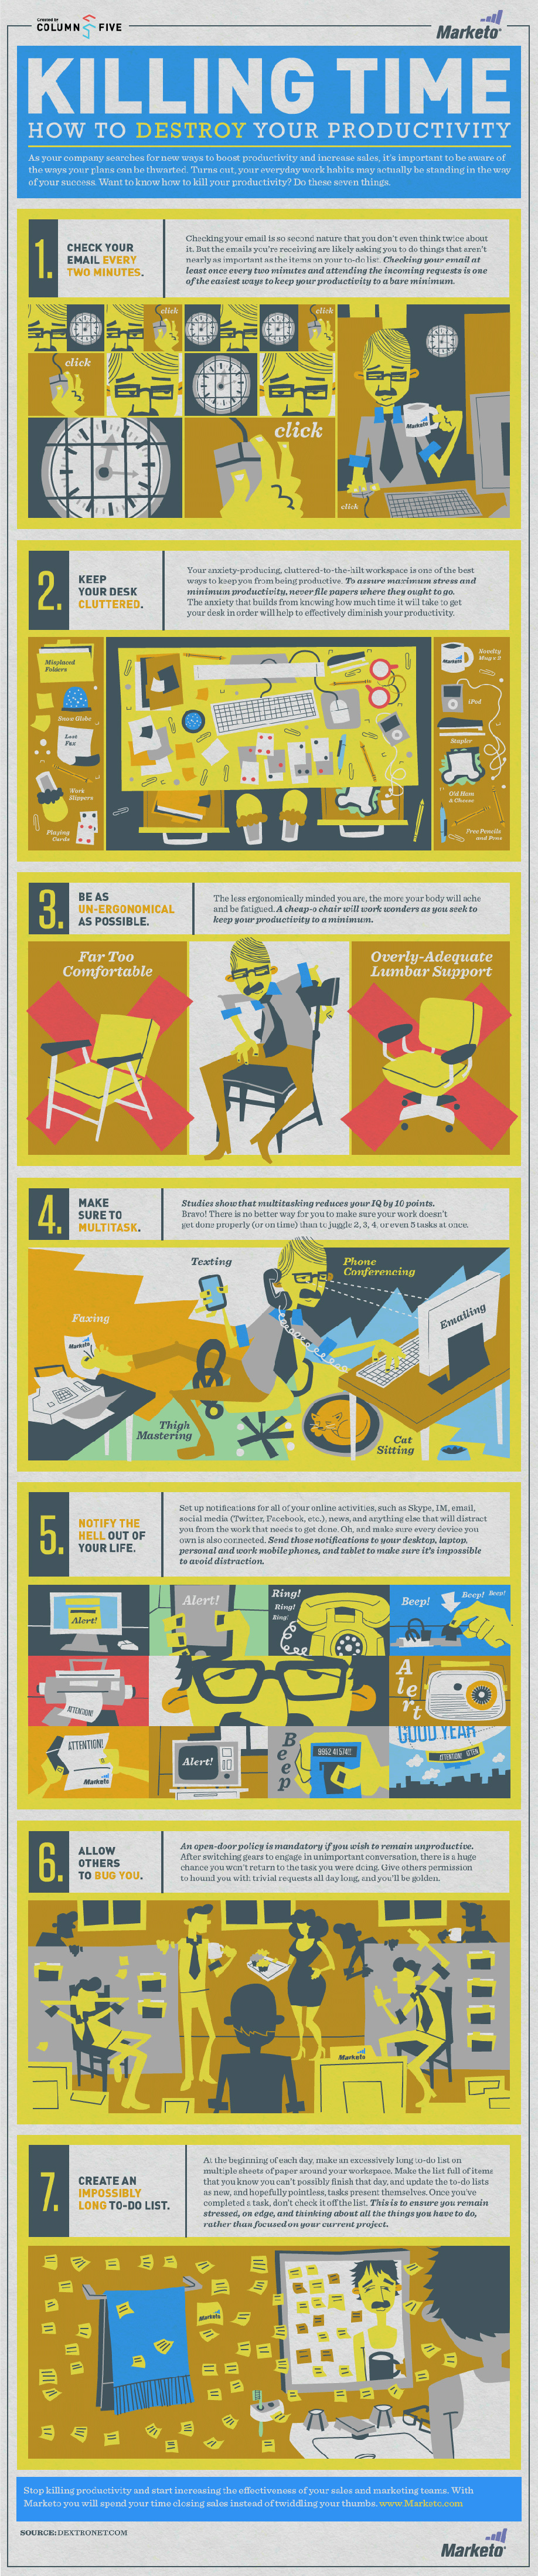 Infographic: Killing Time: How to Destroy Your Productivity